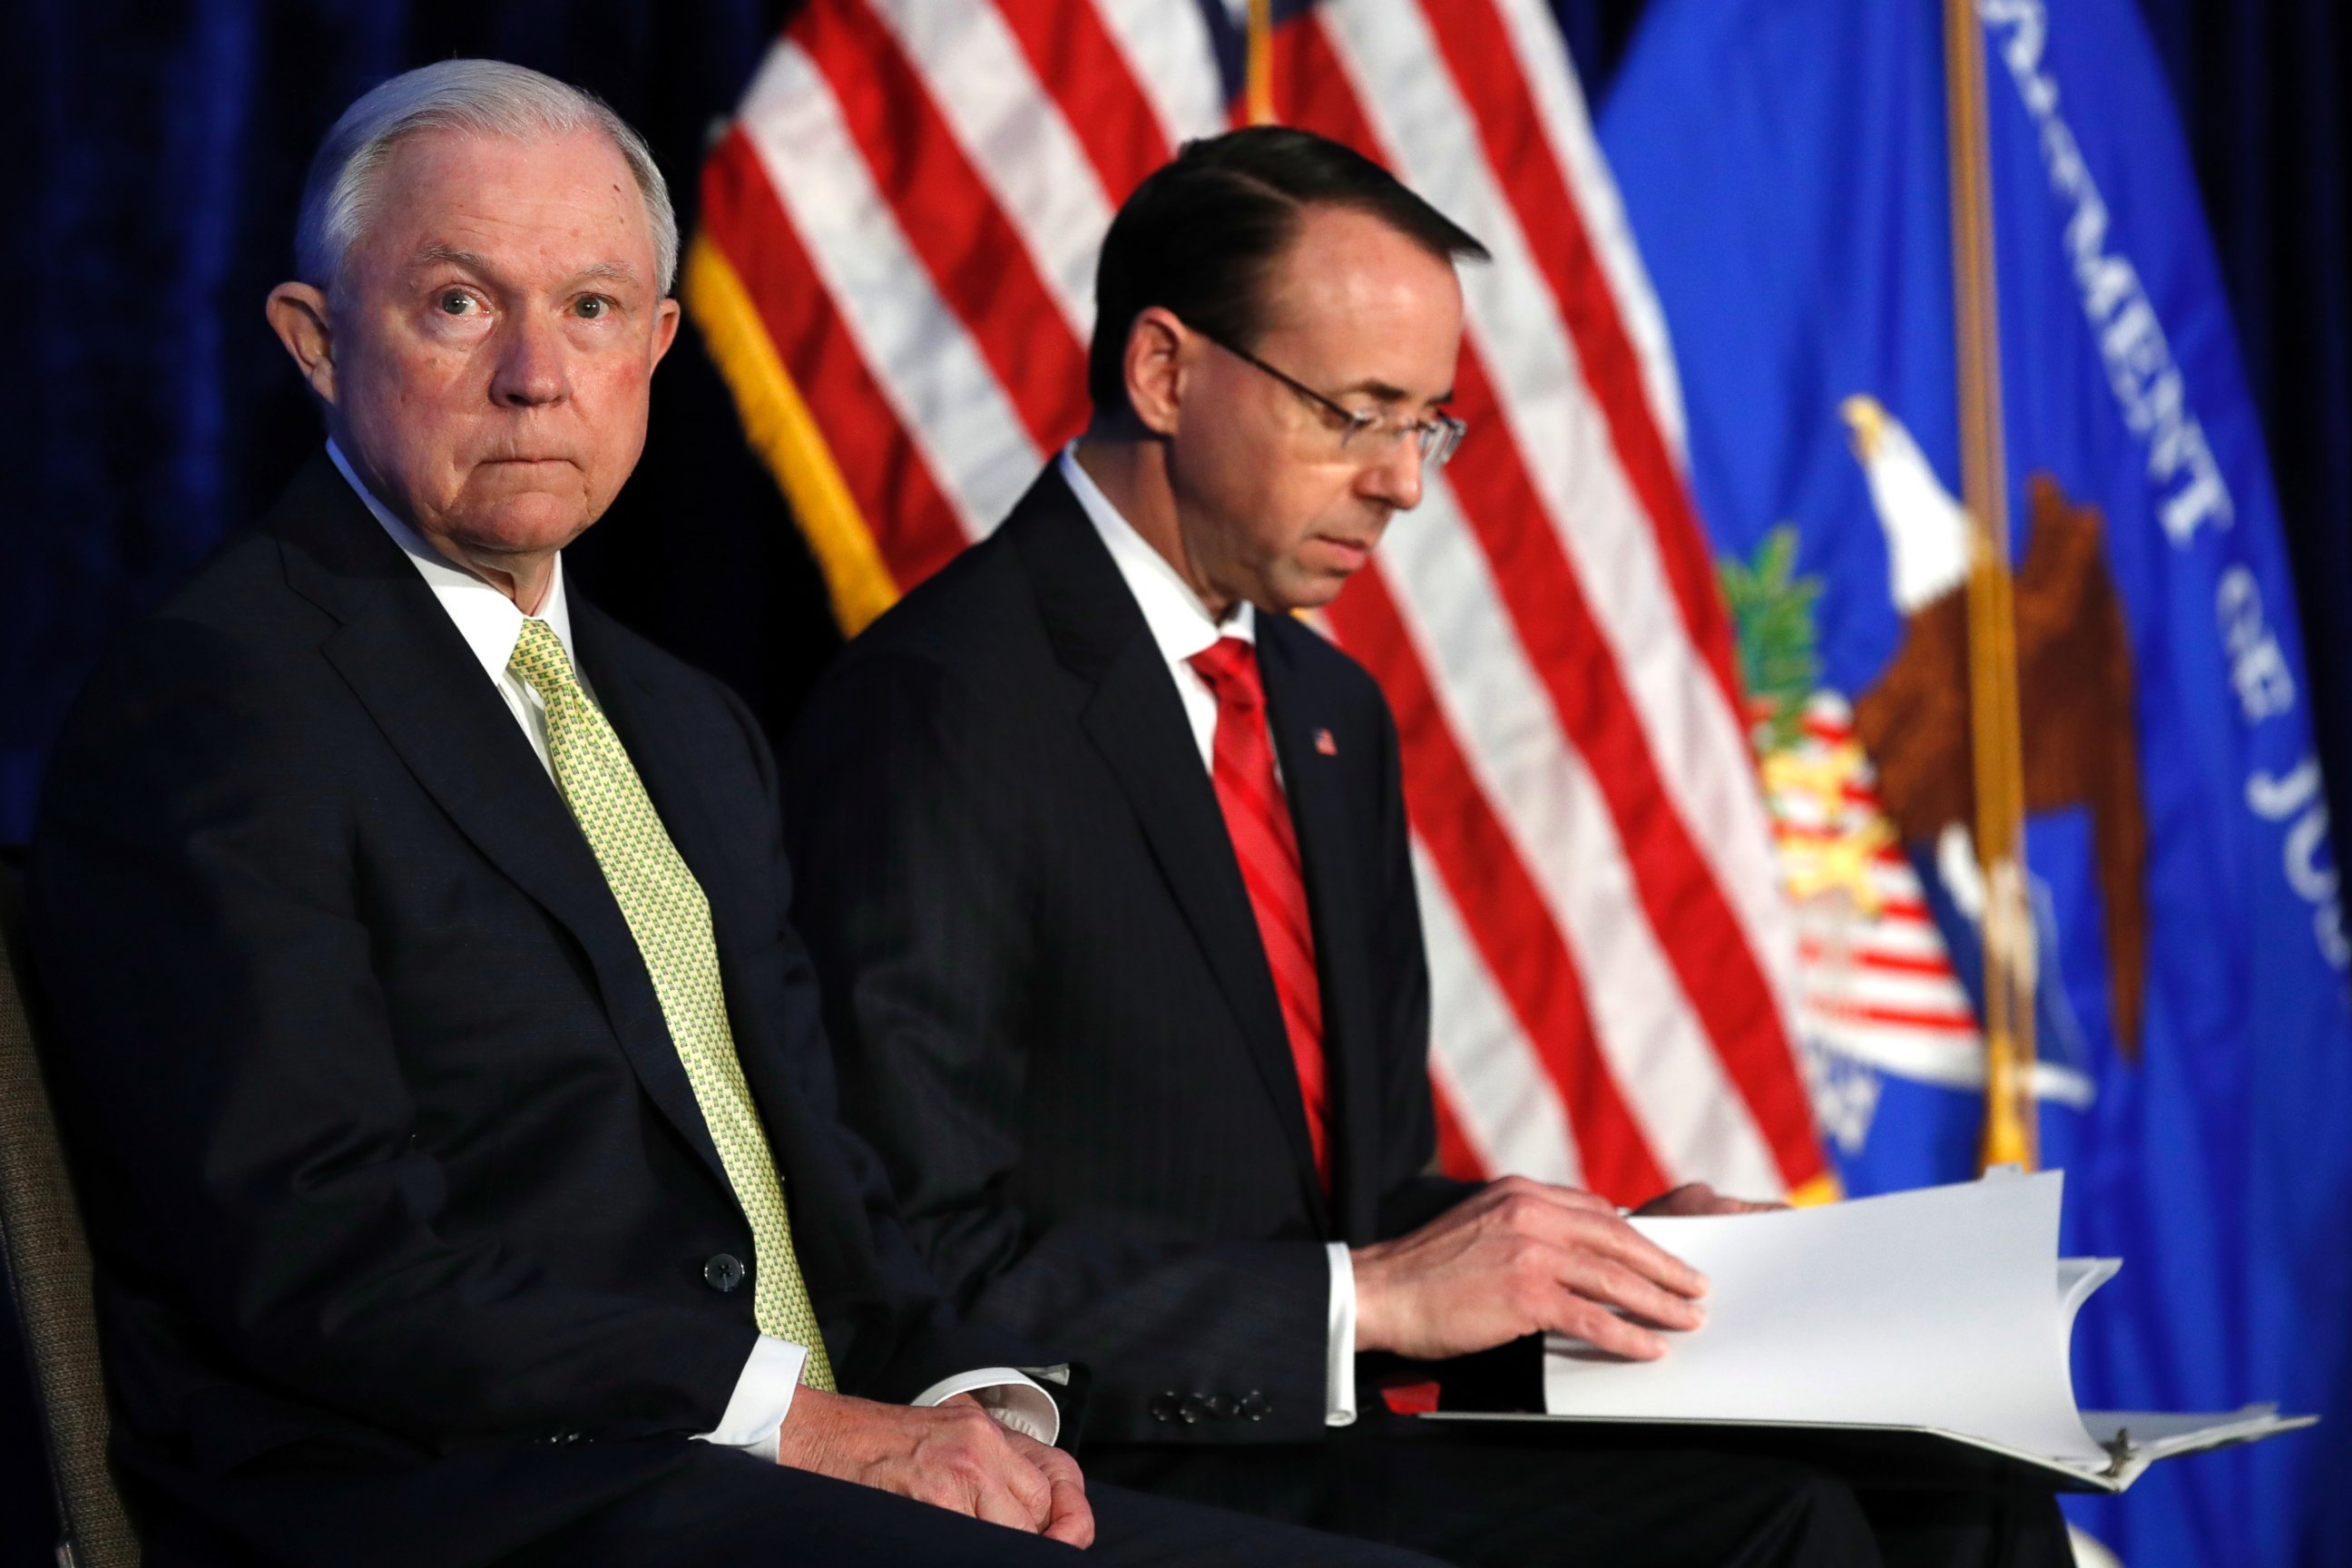 Attorney generals Jeff Sessions and Rod Rosenstein